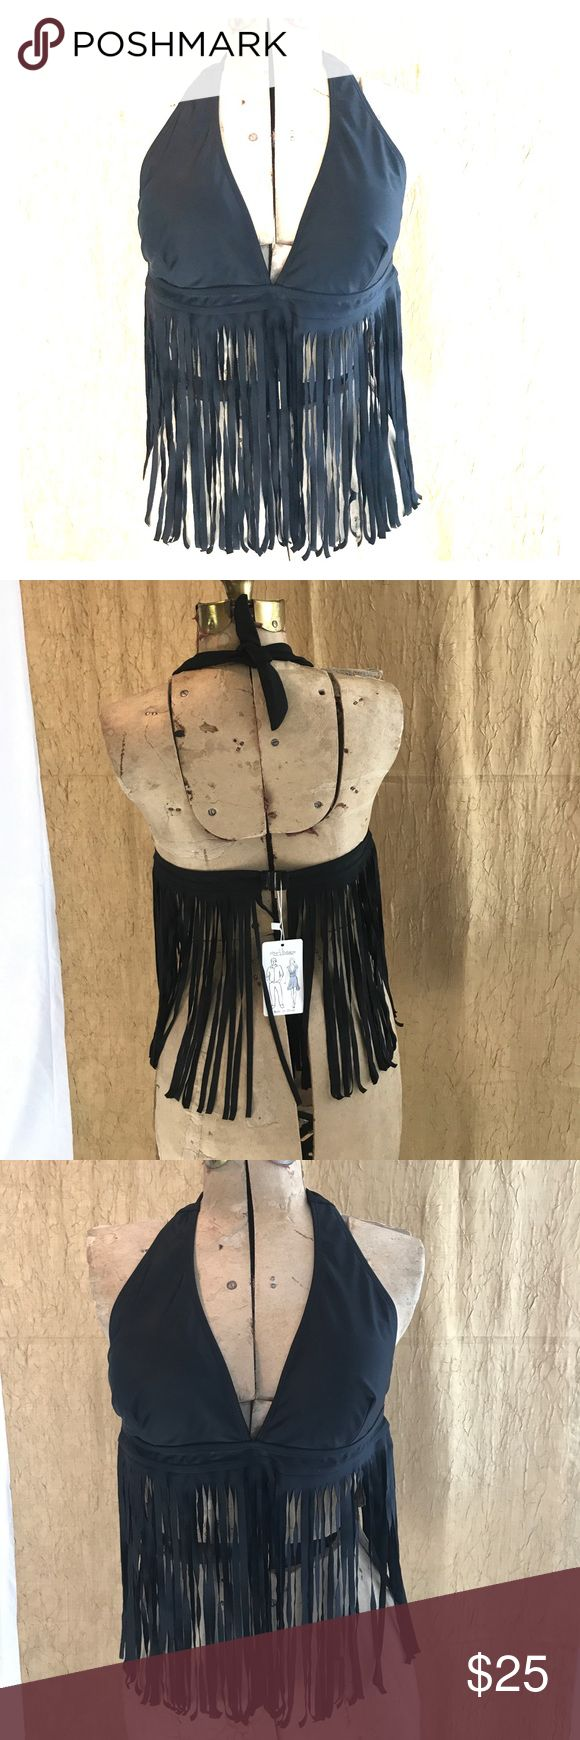 Fringe Bikini Bathing Suit Top Black fringe bikini bathing suit top, light removable pads, Halter style with clamp back closure, never worn, top only, no bottoms Tribear Swim Bikinis